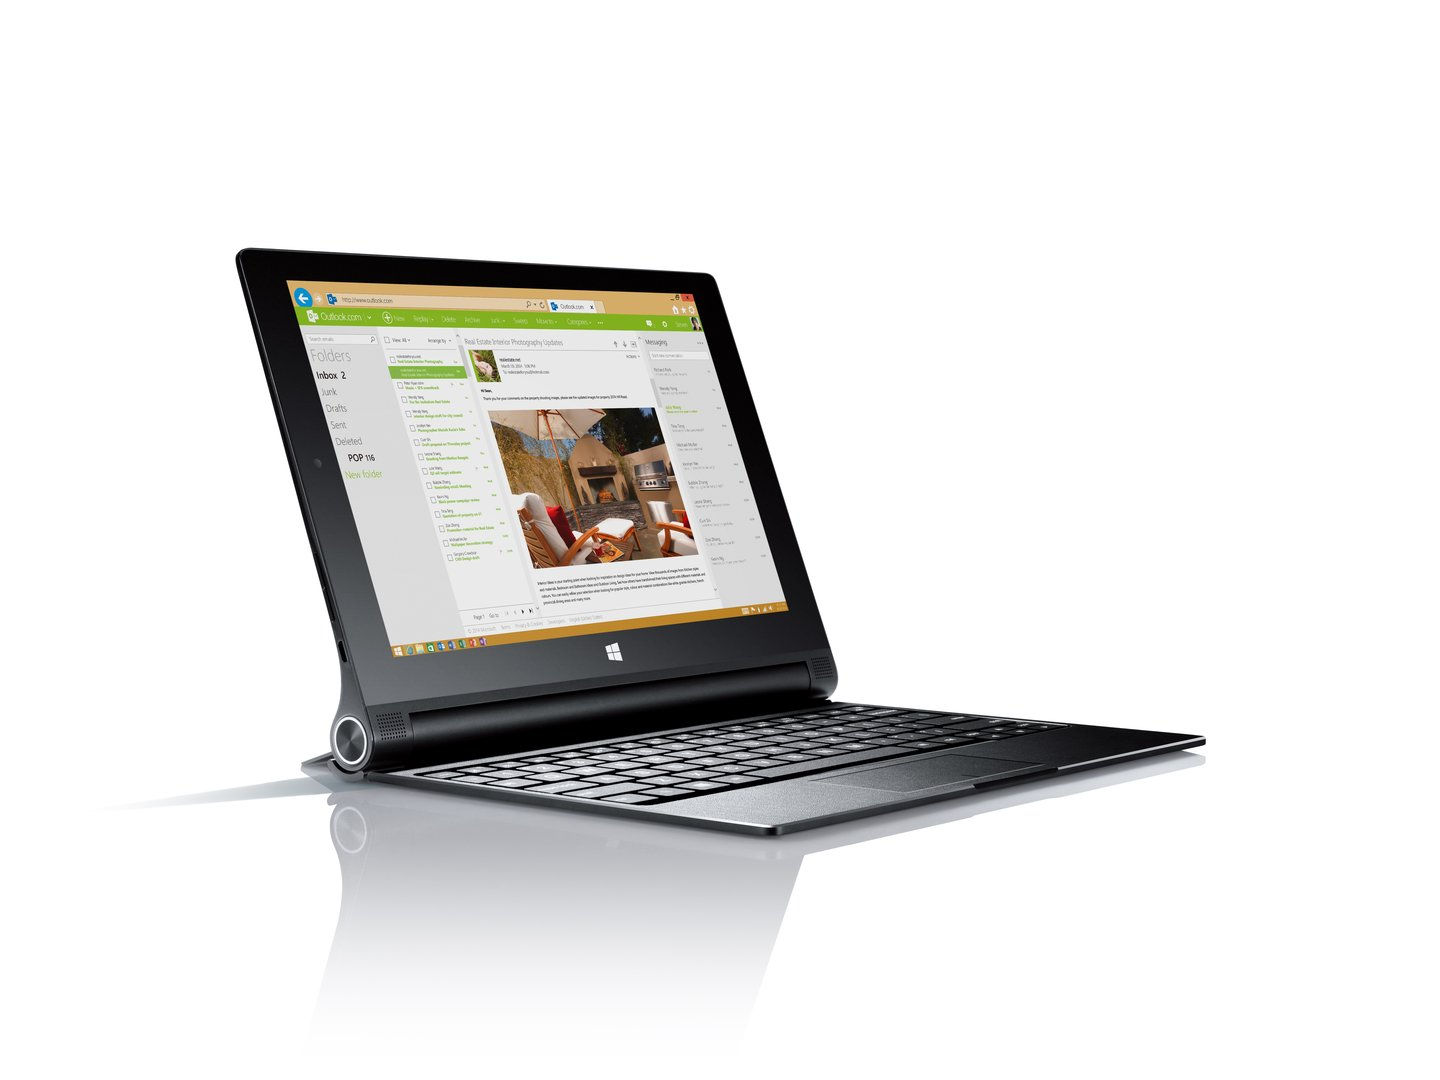 Lenovo Yoga Tablet 2 (Tastatur-Dock optional)